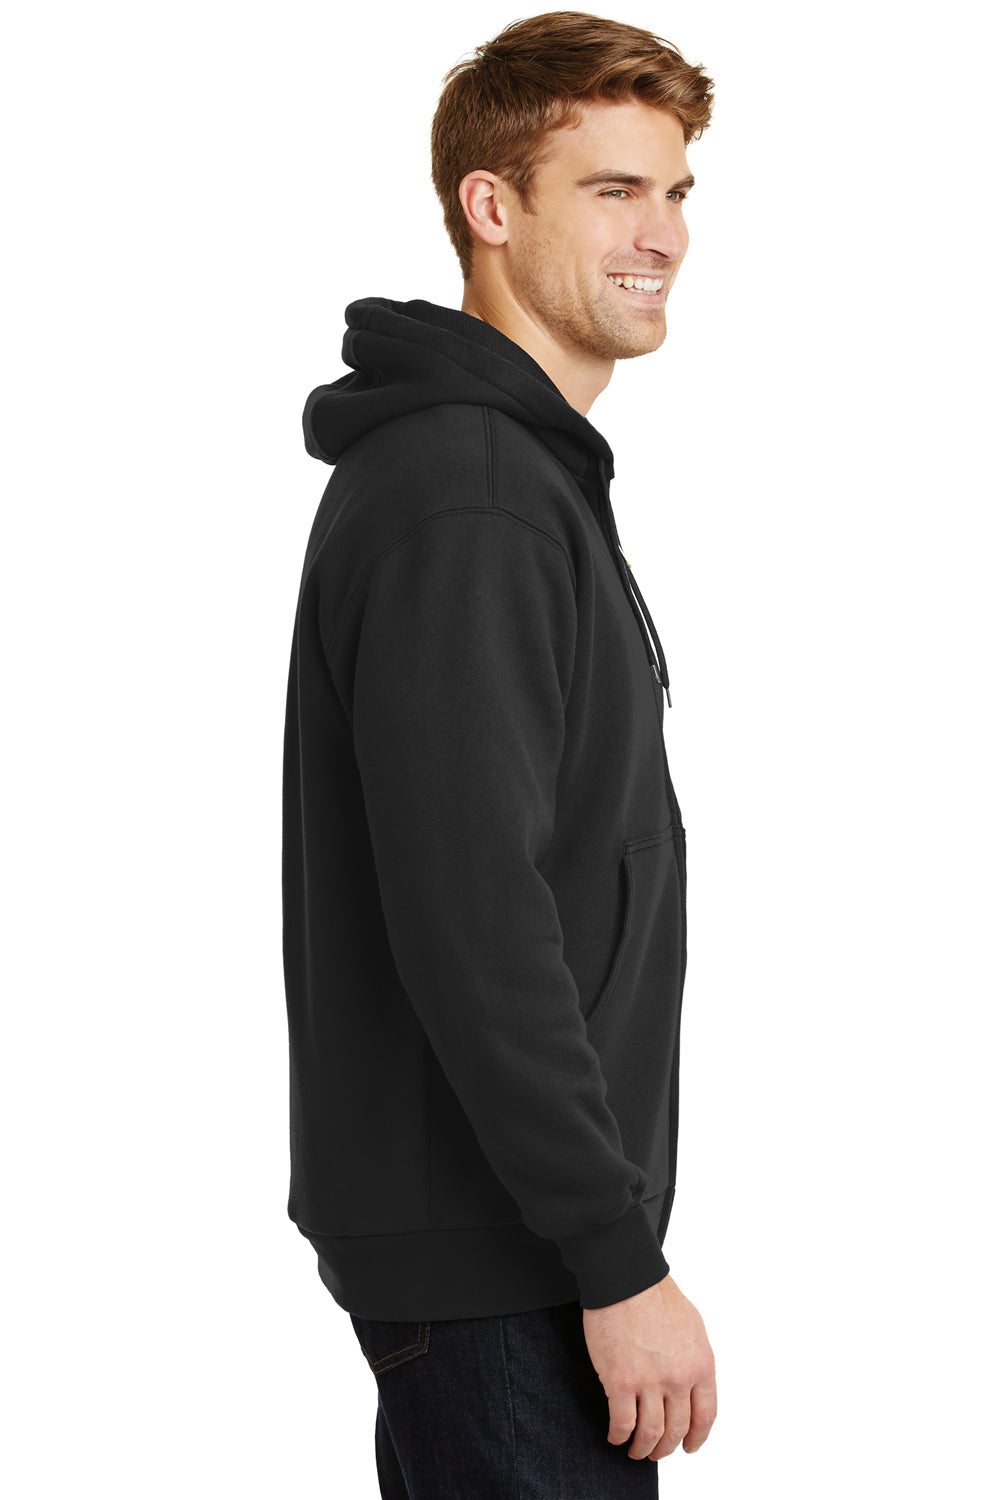 CornerStone CS620 Mens Full Zip Hooded Sweatshirt Hoodie Black Side